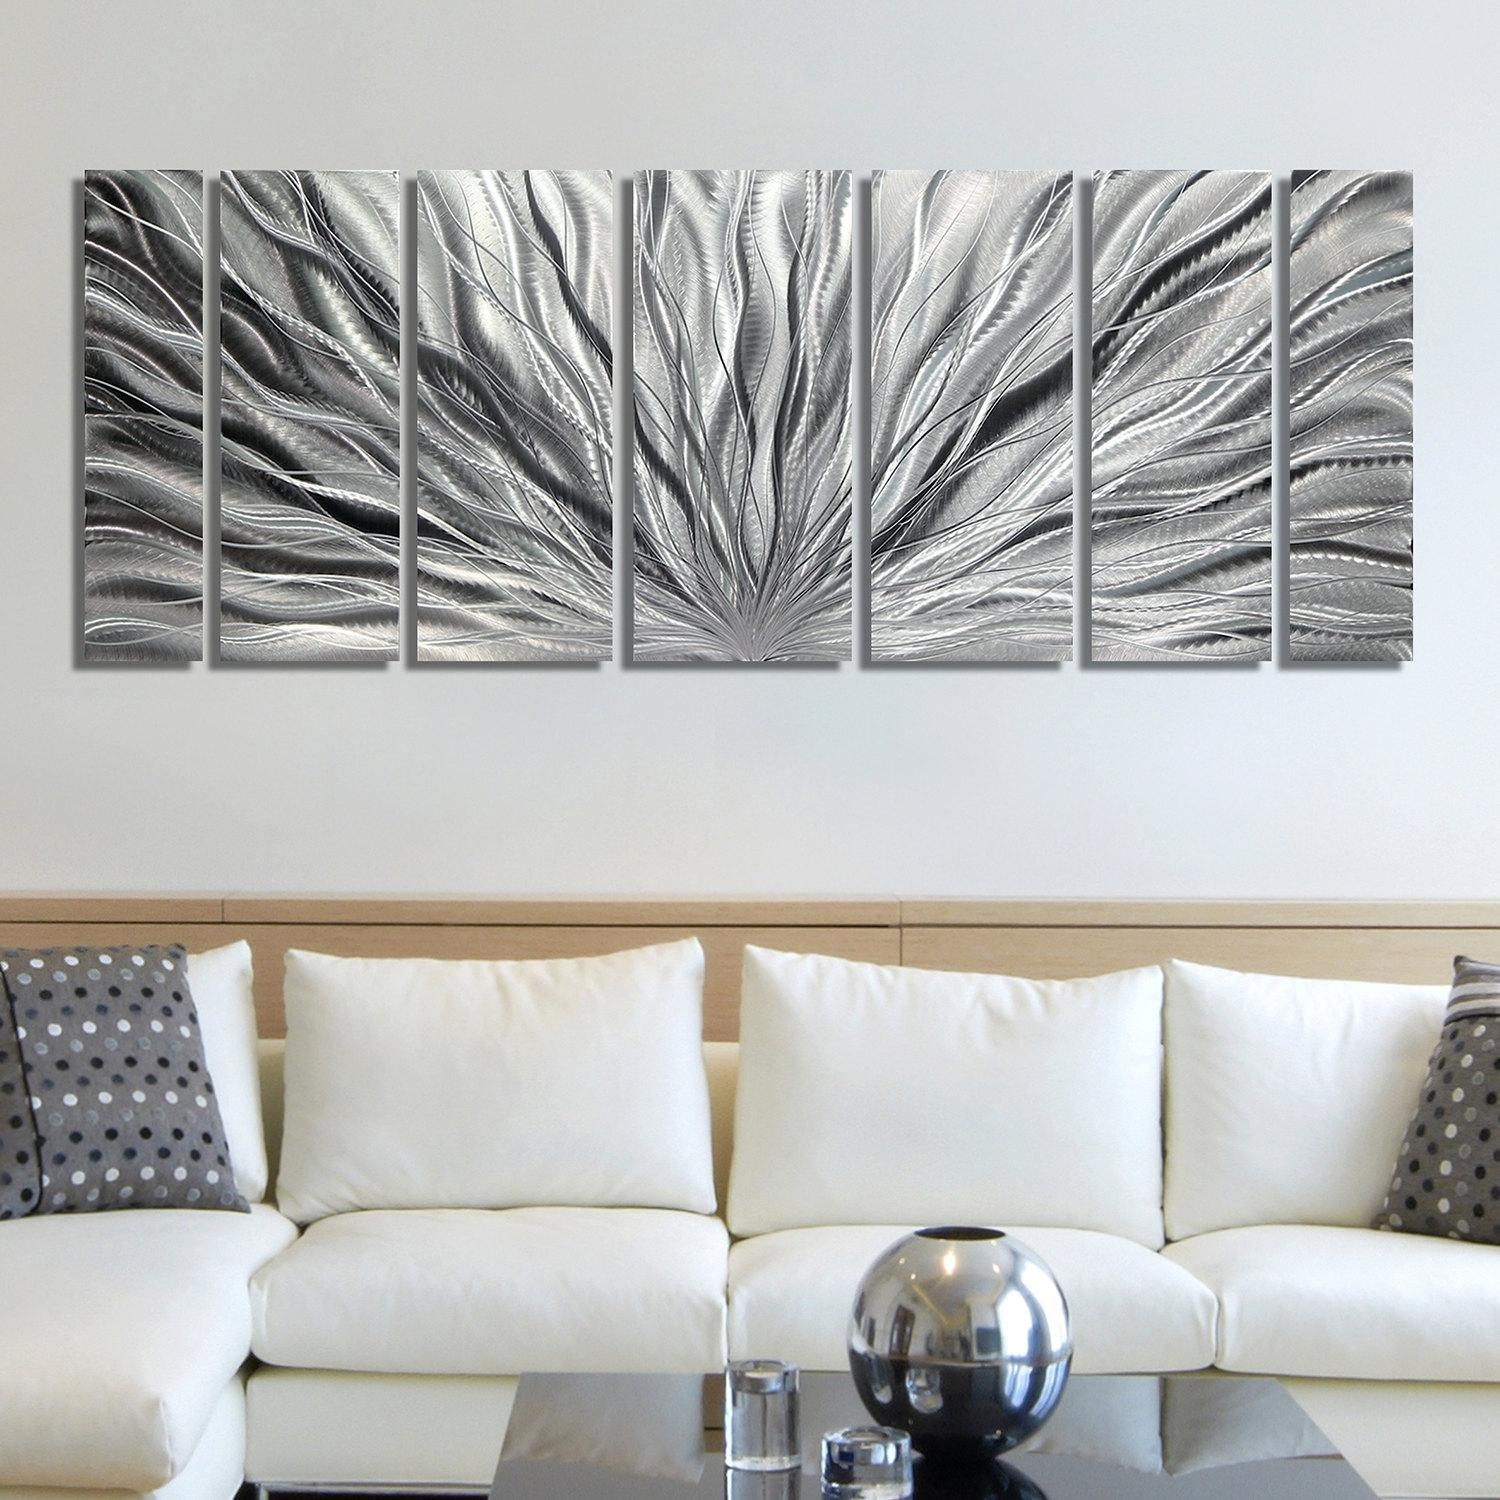 Sale Large Multi Panel Metal Wall Art In All Silver With Regard To Large Metal Wall Art Sculptures (View 4 of 20)